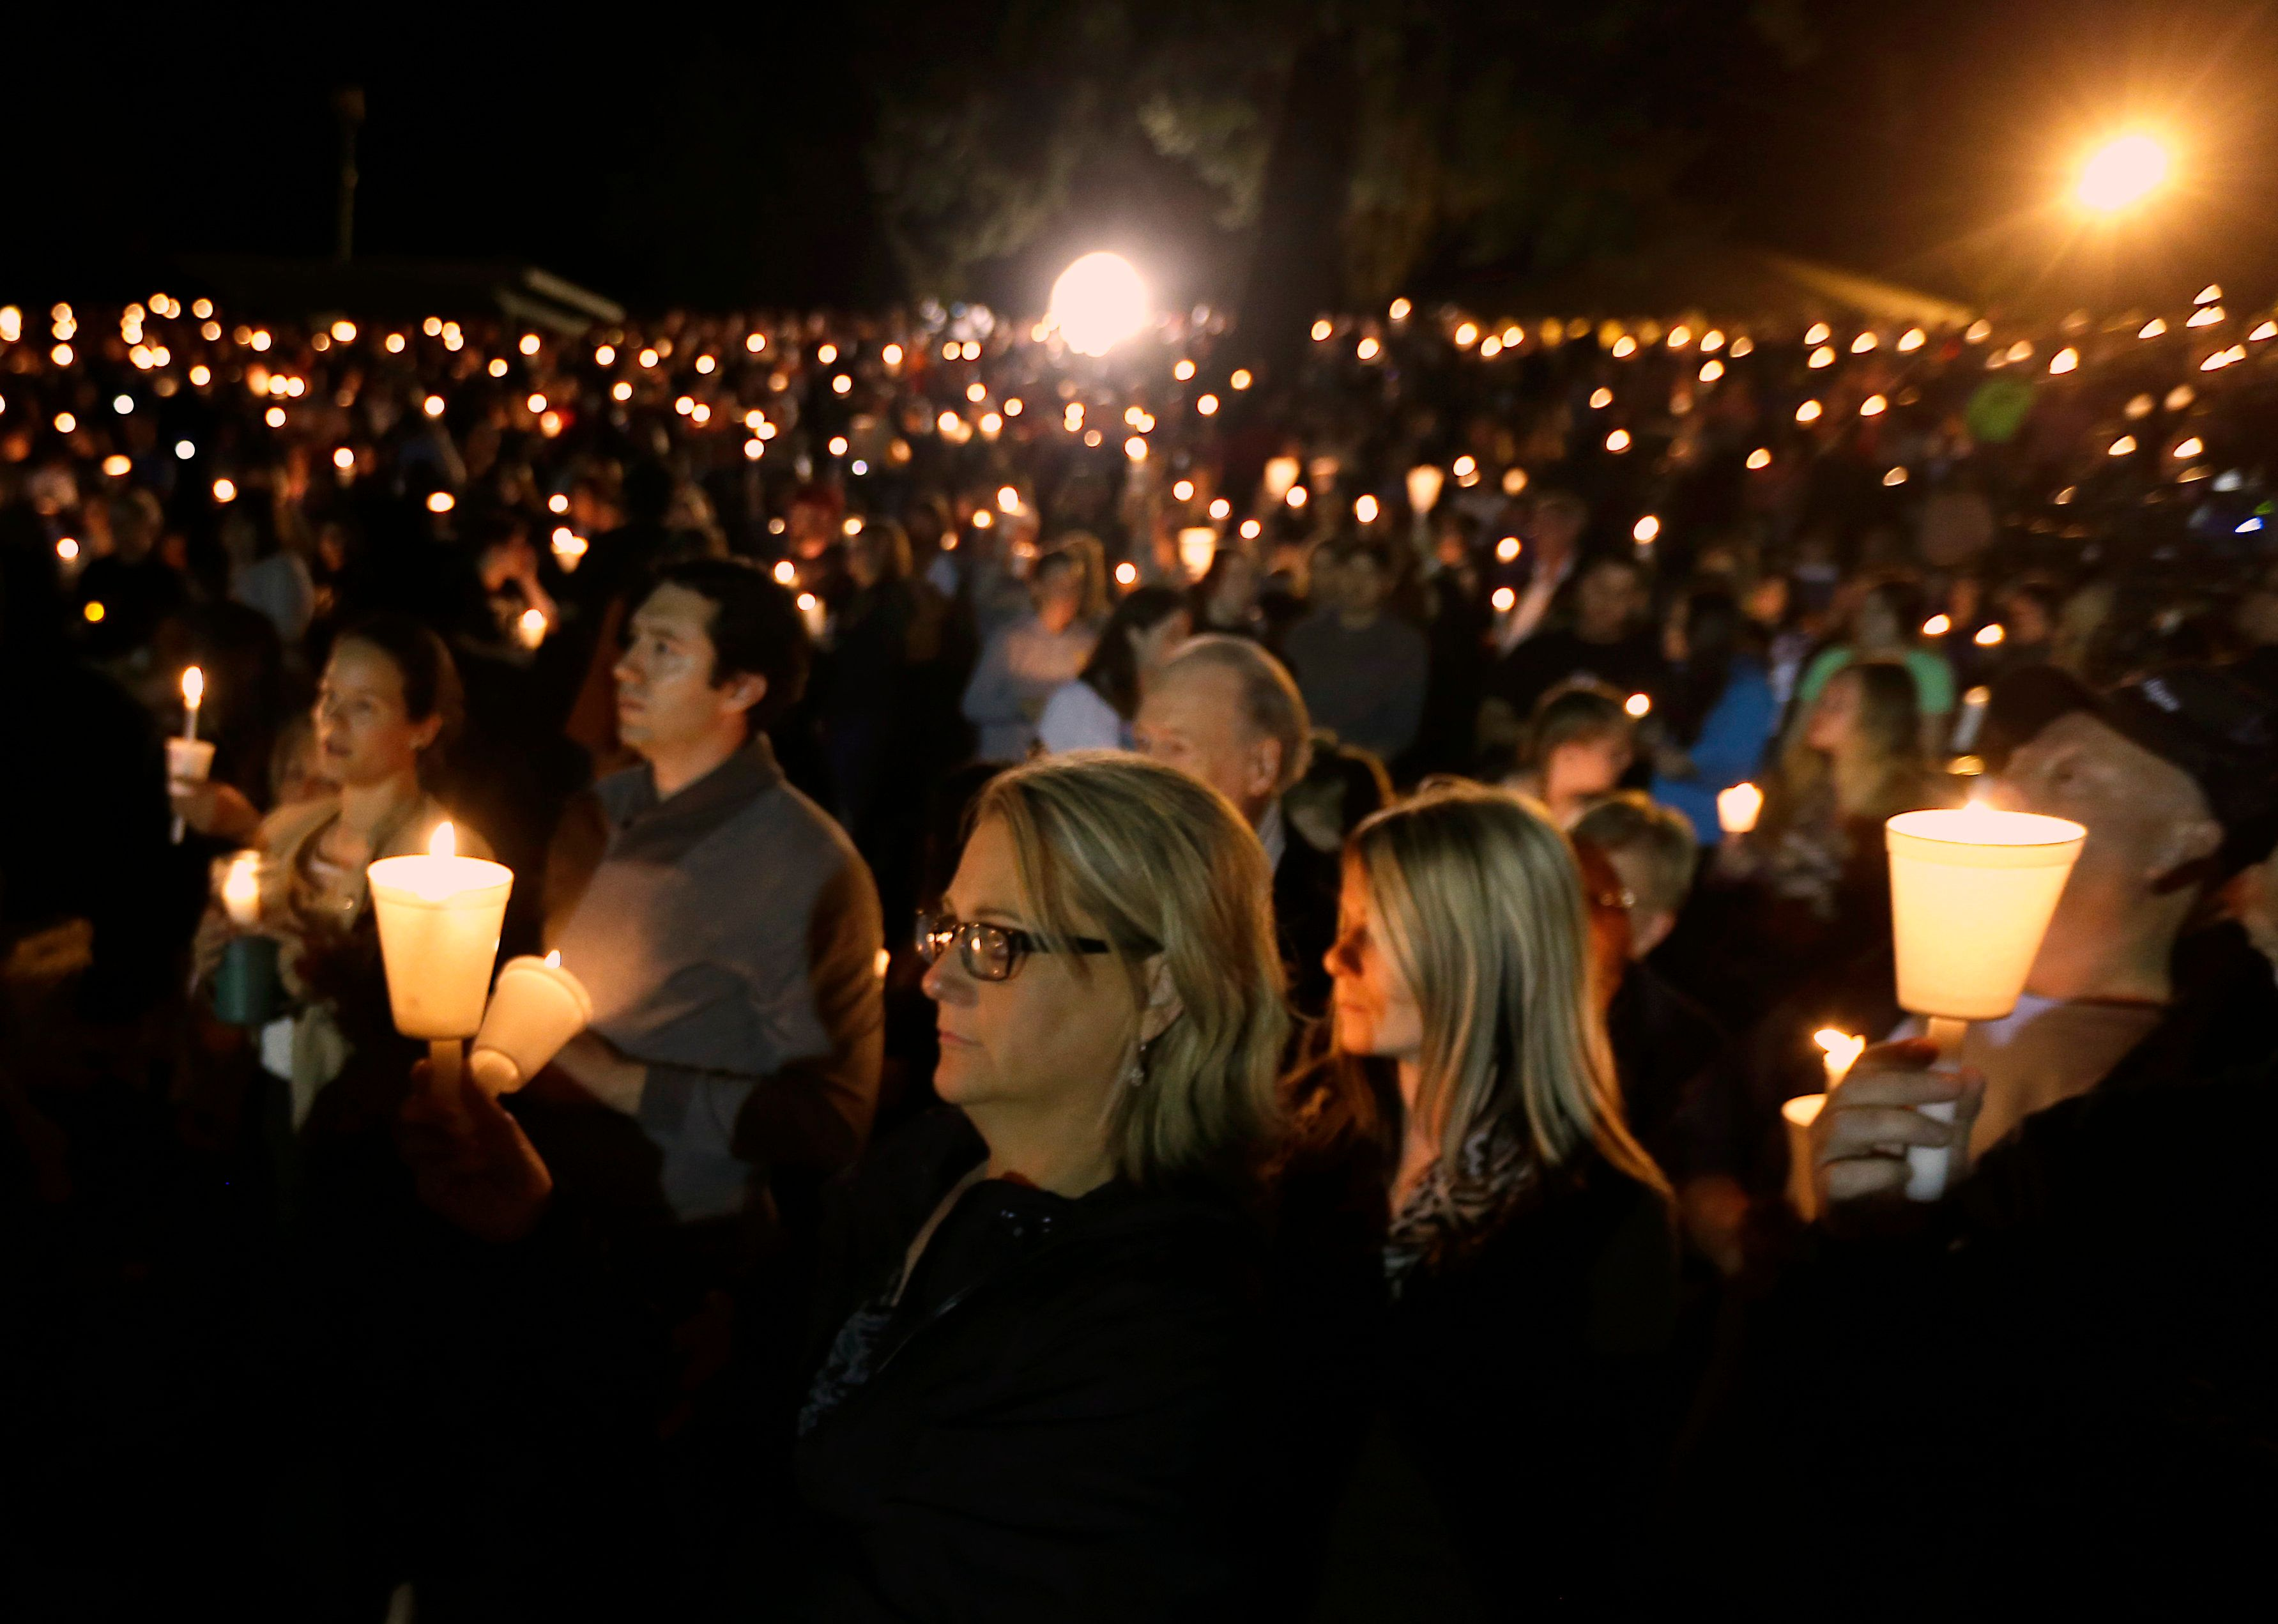 "<span class='image-component__caption' itemprop=""caption"">Community members gather for a vigil for those killed in a shooting at Umpqua Community College in Roseburg, Oregon on Oct. 1, 2015.</span>"